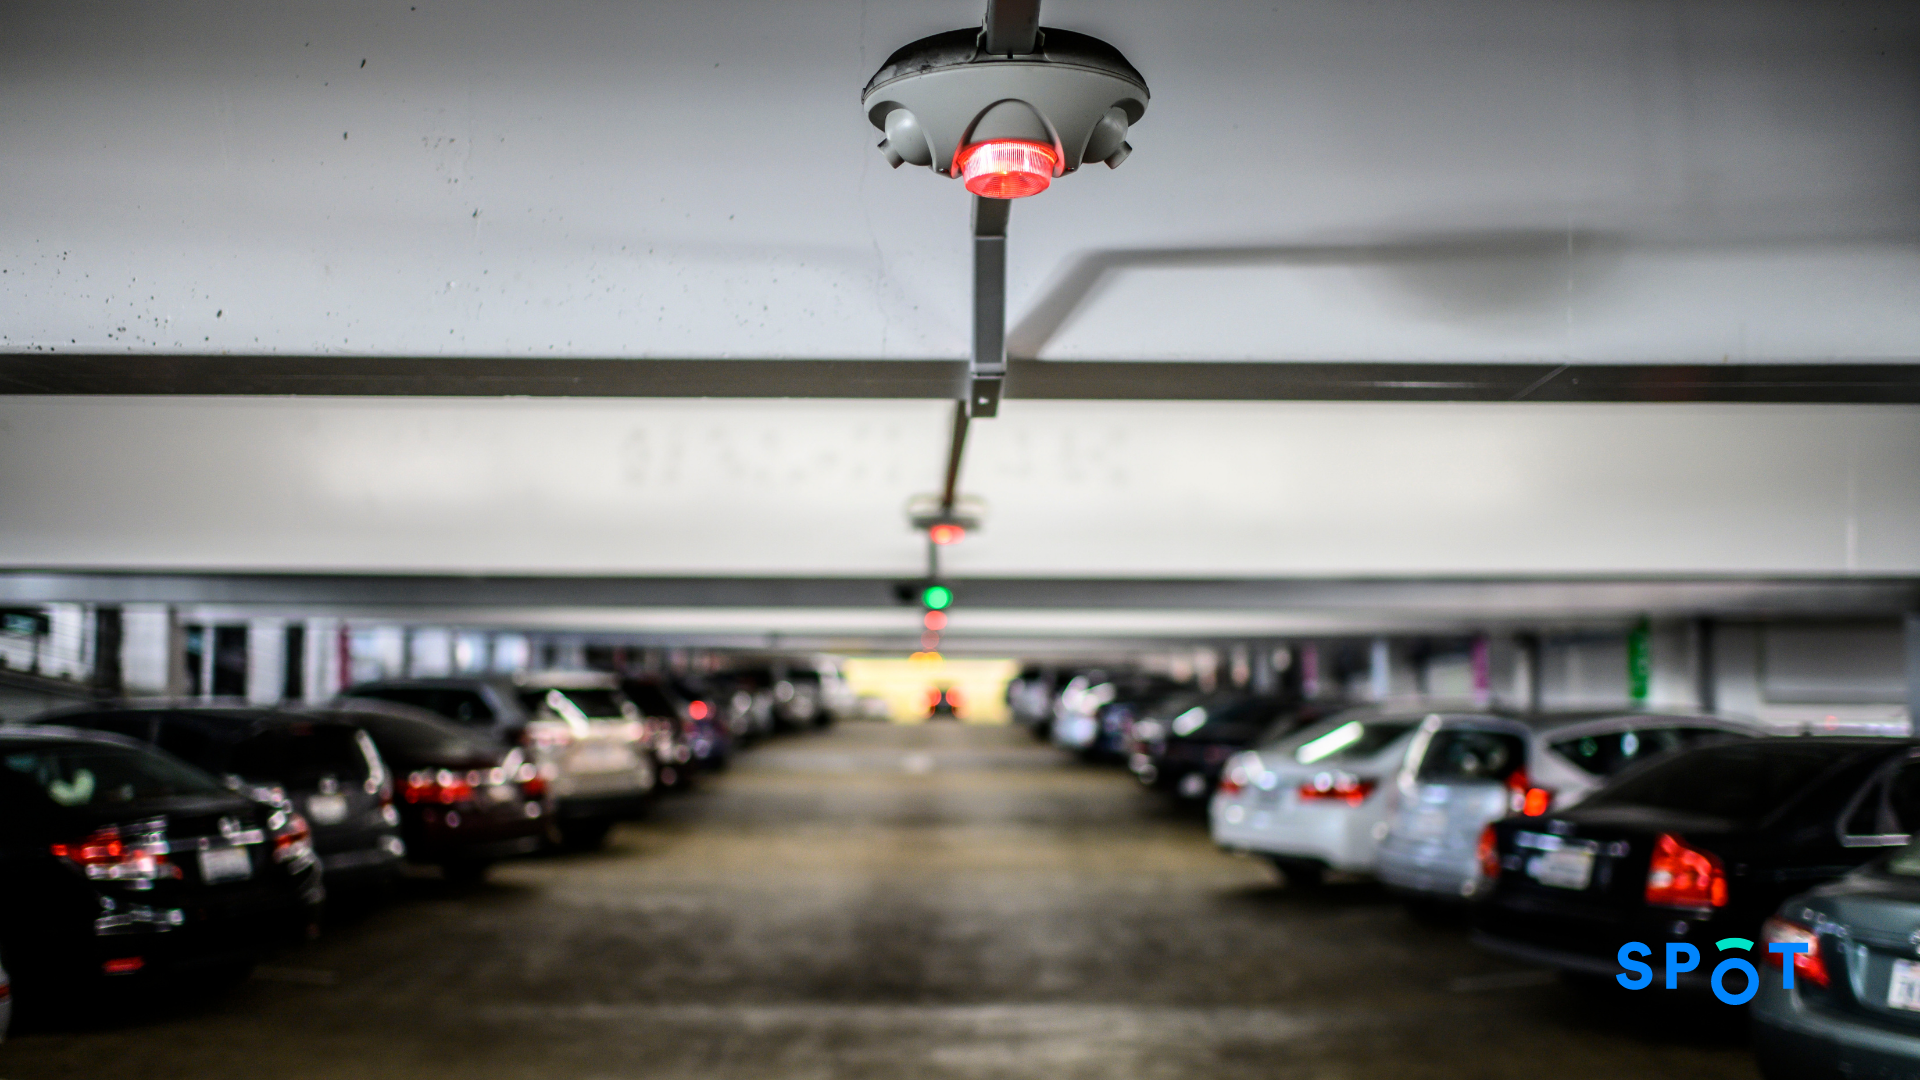 A parking sensor in a parking lot to help reduce the amount of time people spend looking for parking